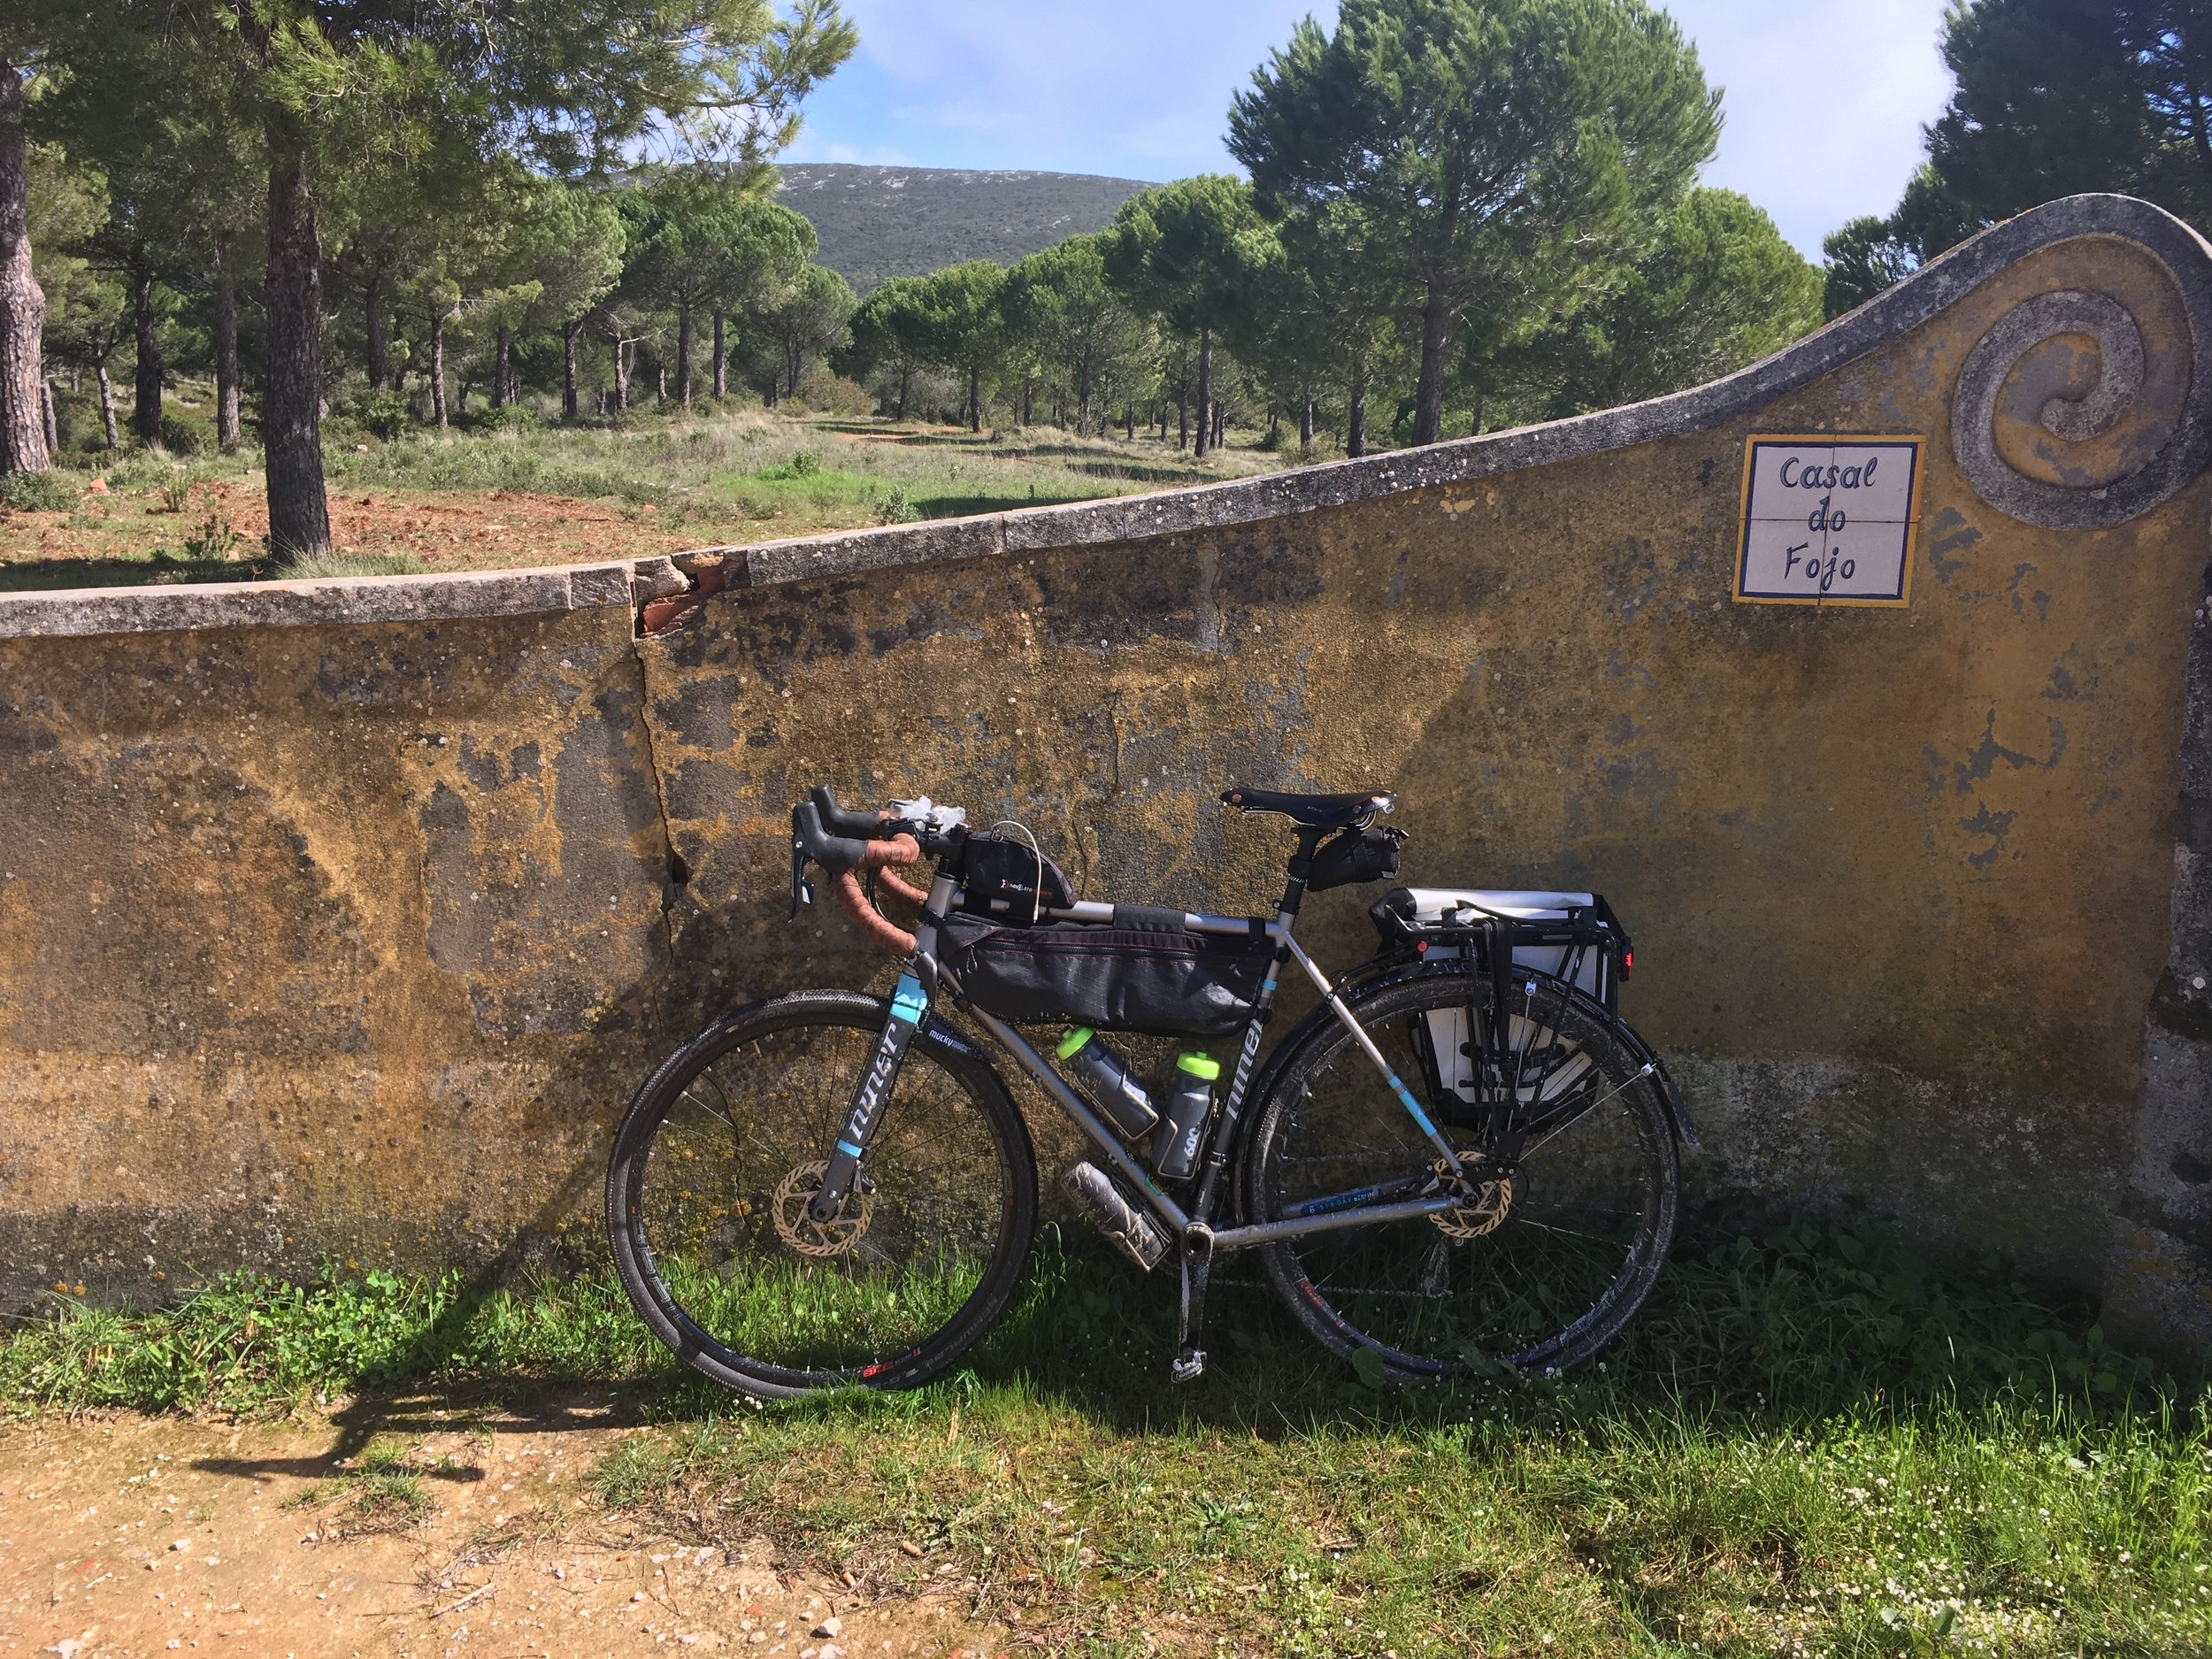 wall and bike on gravel road.jpg